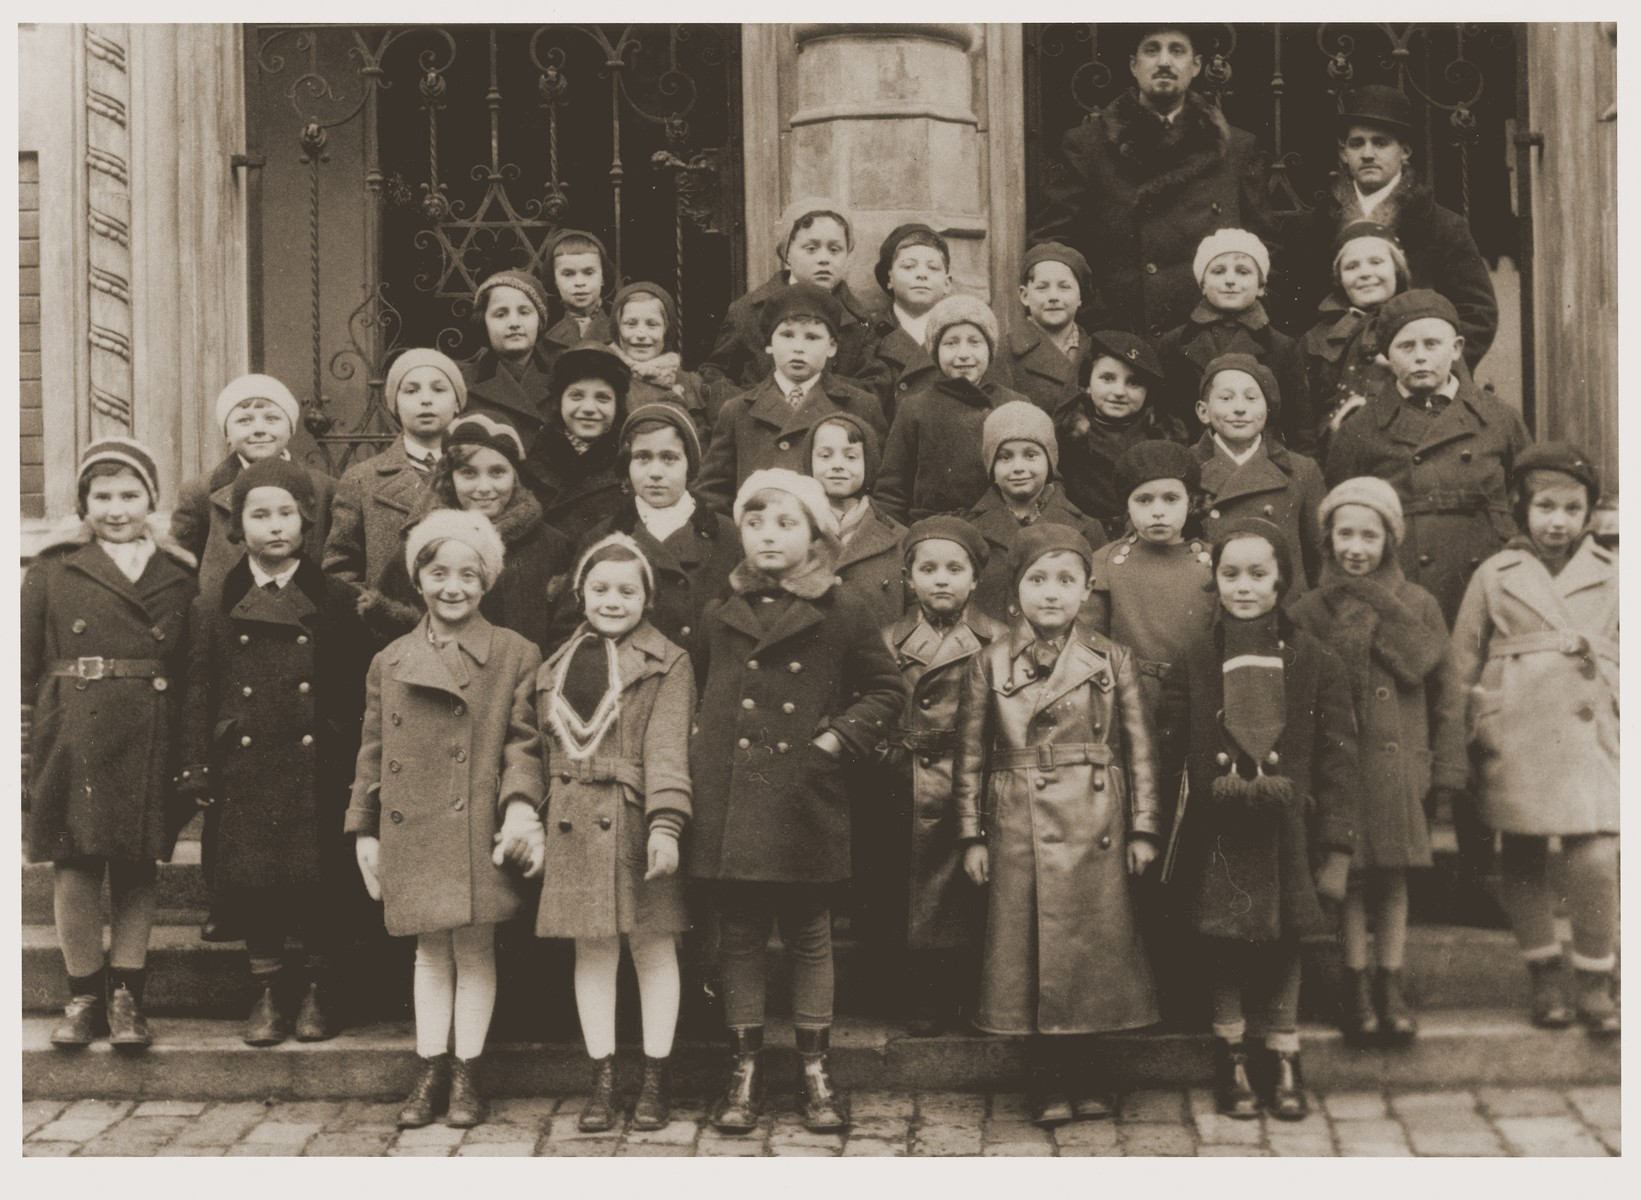 Afternoon Hebrew school class poses in front of the synagogue in Troppau (Opava).    Wearing leather coats in the front row are Leo and Milan Goldberger.  Their father, Cantor Eugene Goldberger is in the very back. In front of him is is brother-in-law and assistant, Gabor Berkovic.  Gabor became chief cantor following Eugene's move to Denmark.  He survived the war in hiding.